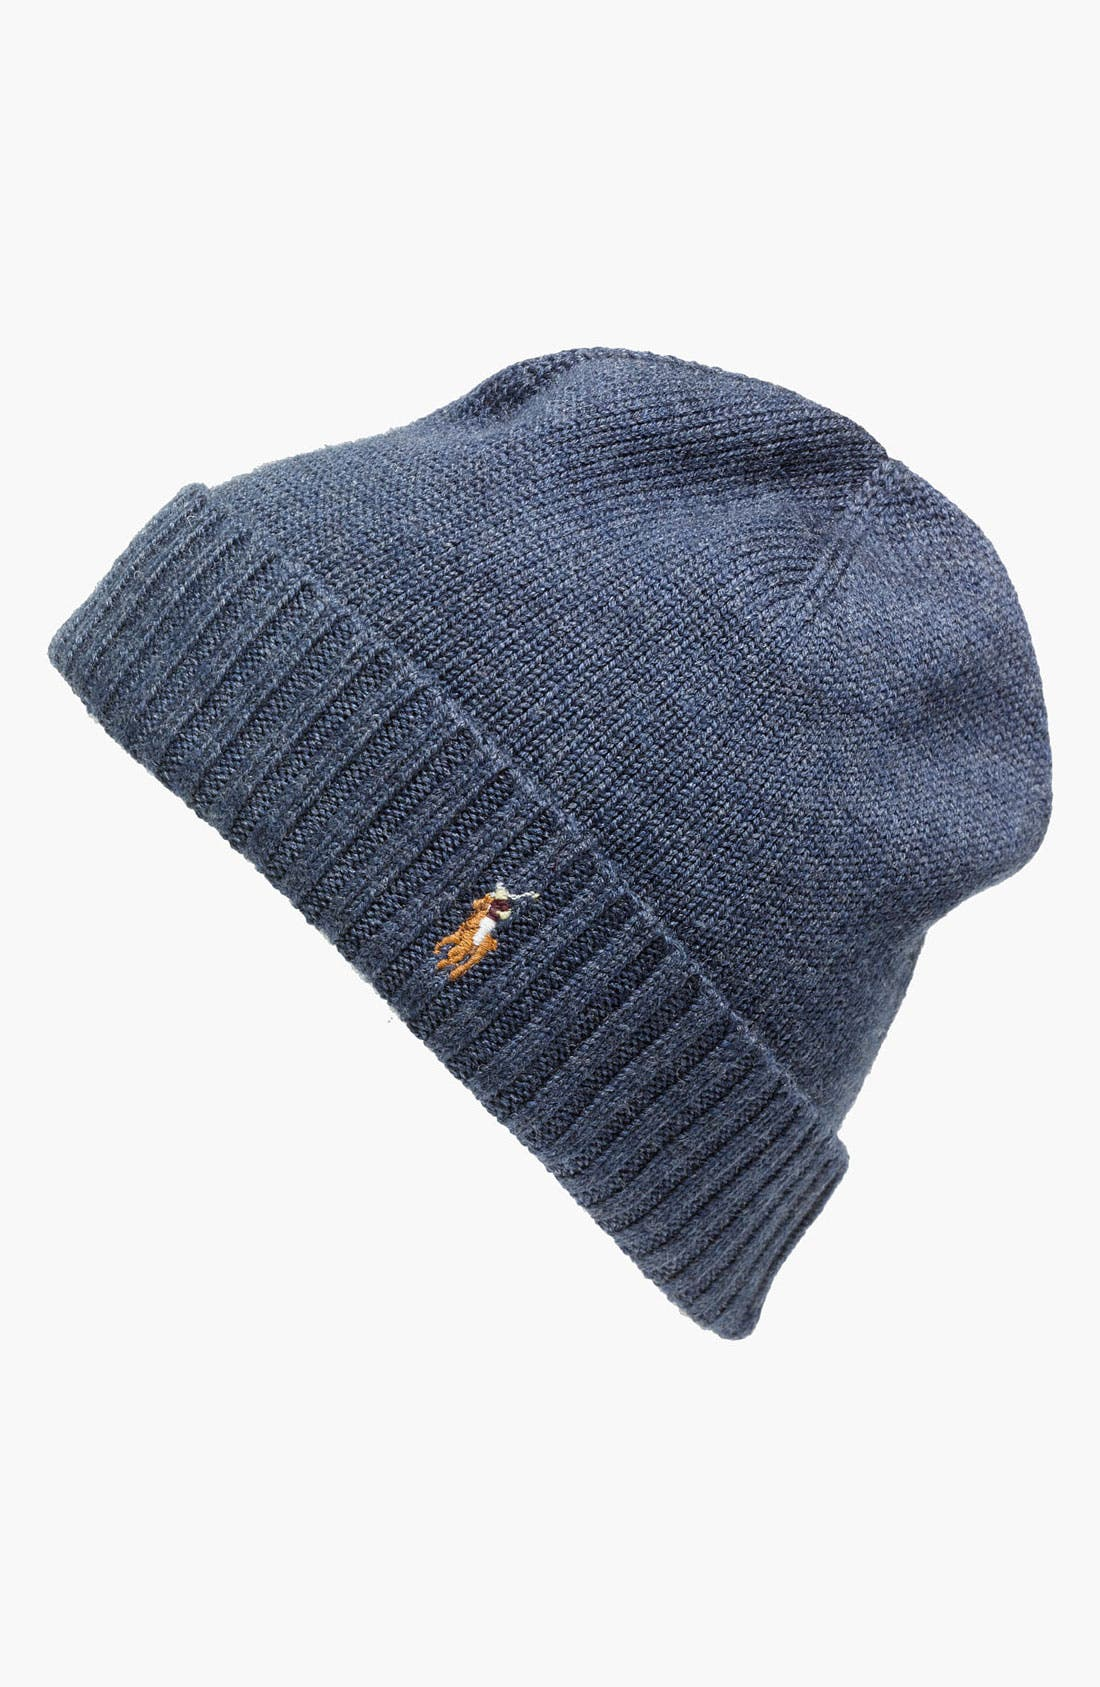 Alternate Image 1 Selected - Polo Ralph Lauren 'Classic Lux' Merino Wool Knit Cap